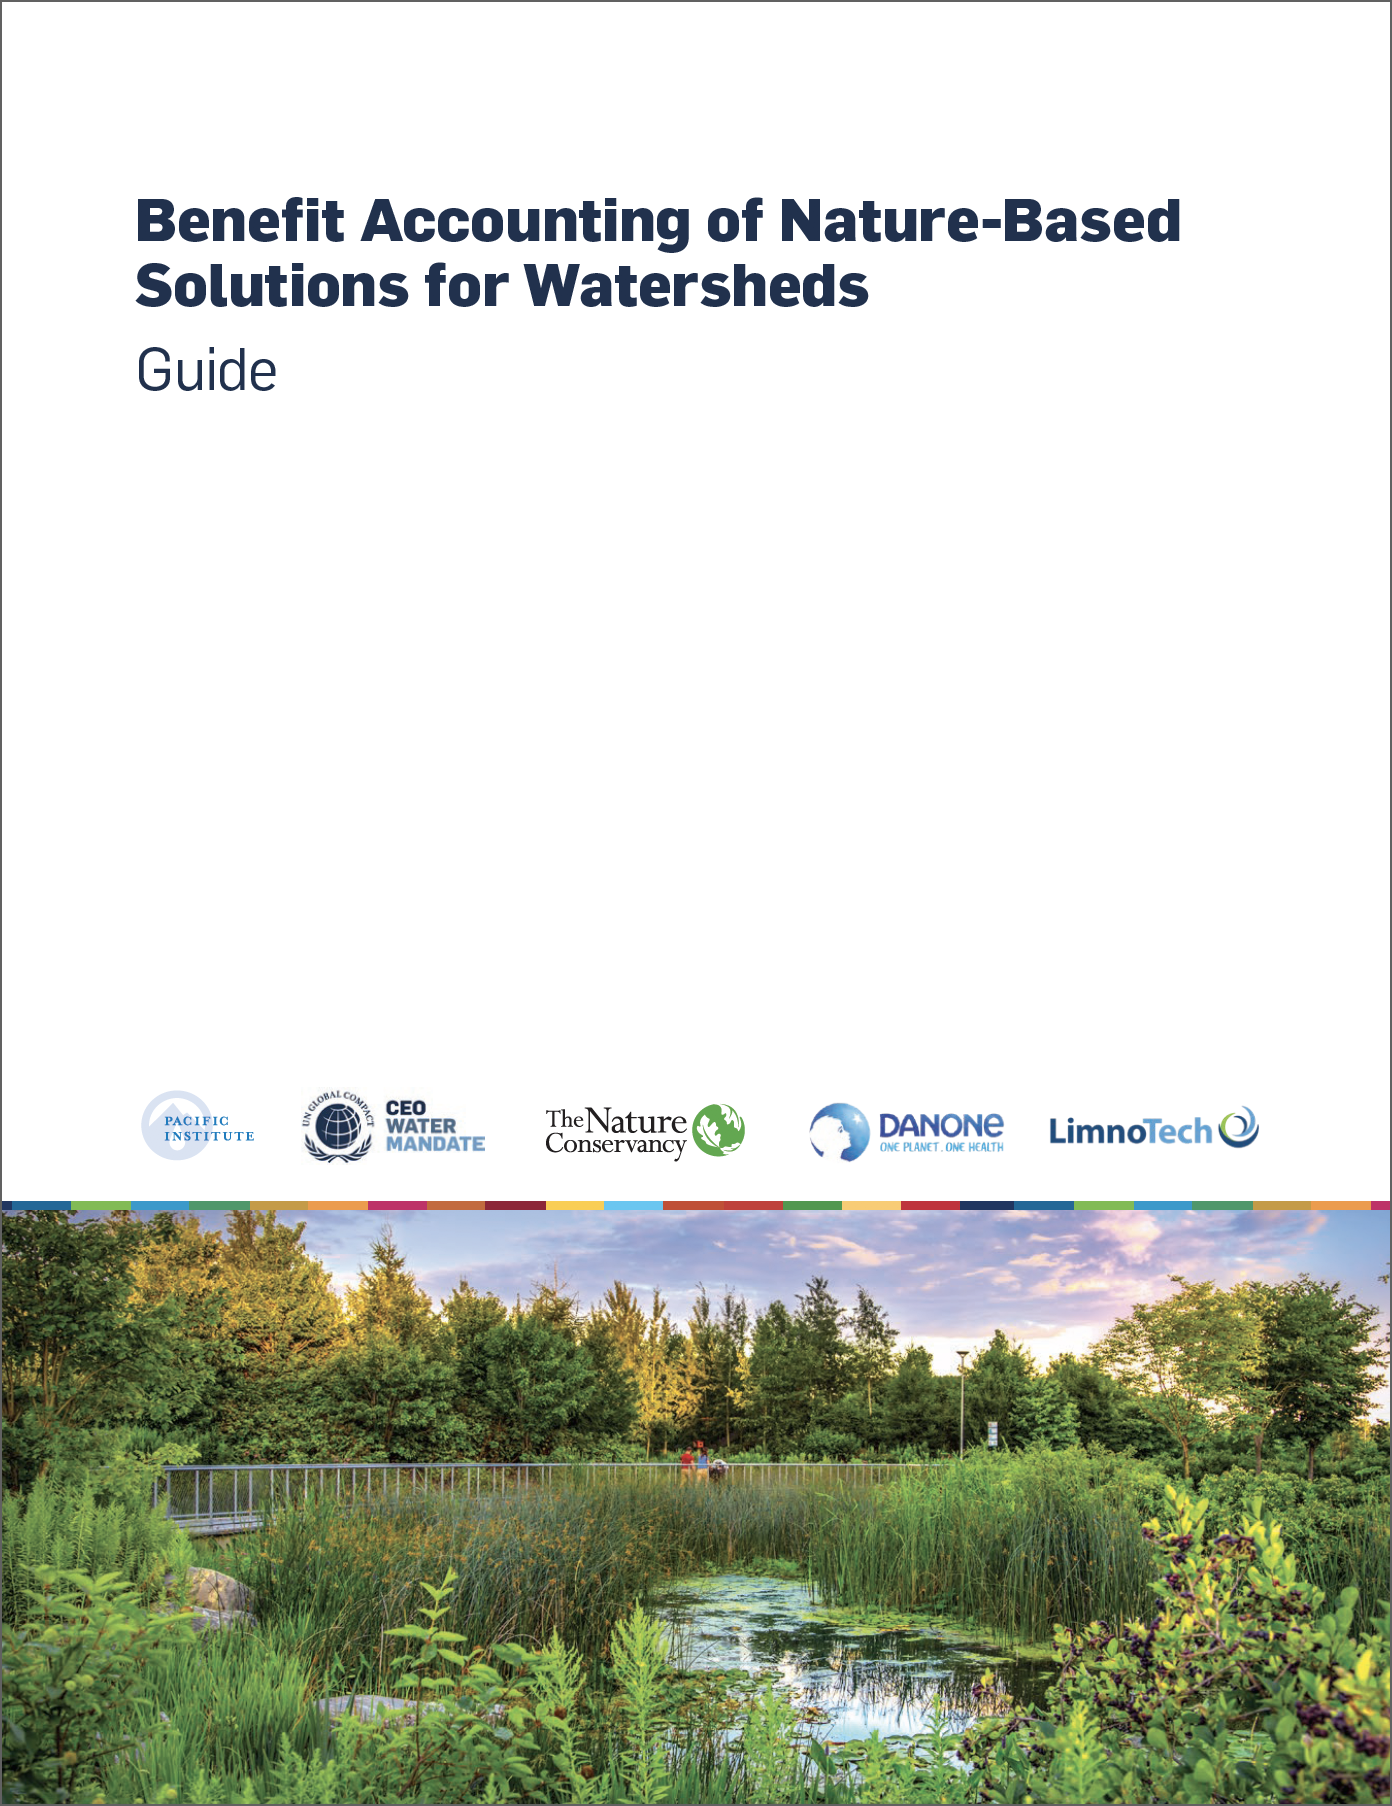 Benefit Accounting of Nature-Based Solutions for Watersheds